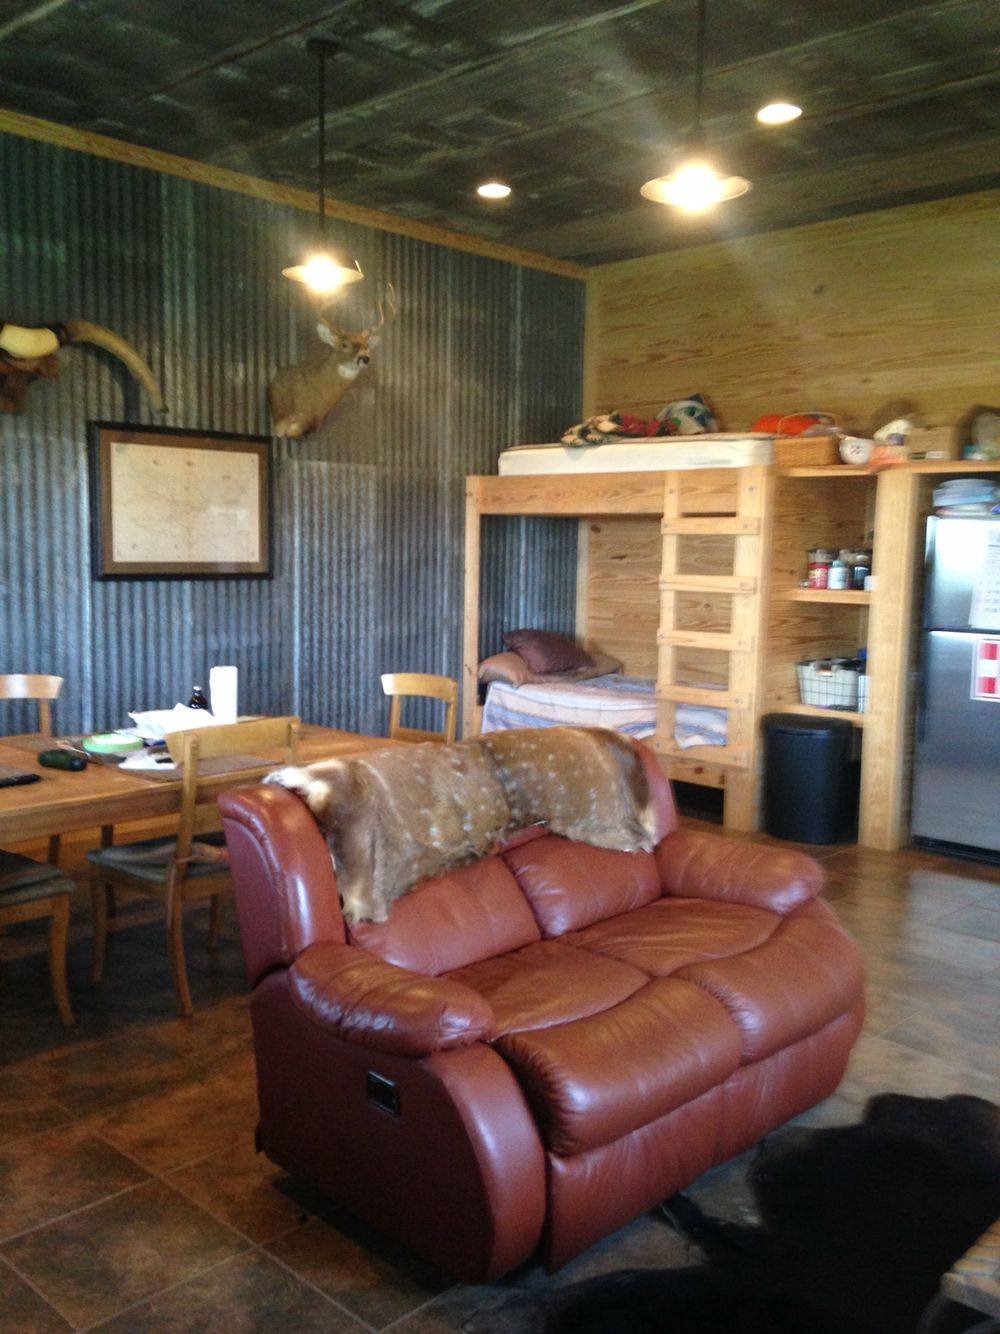 Corrugated Metal Interior Design Rustic Camp House Tongue And Groove Walls Rustic Metal Ceiling